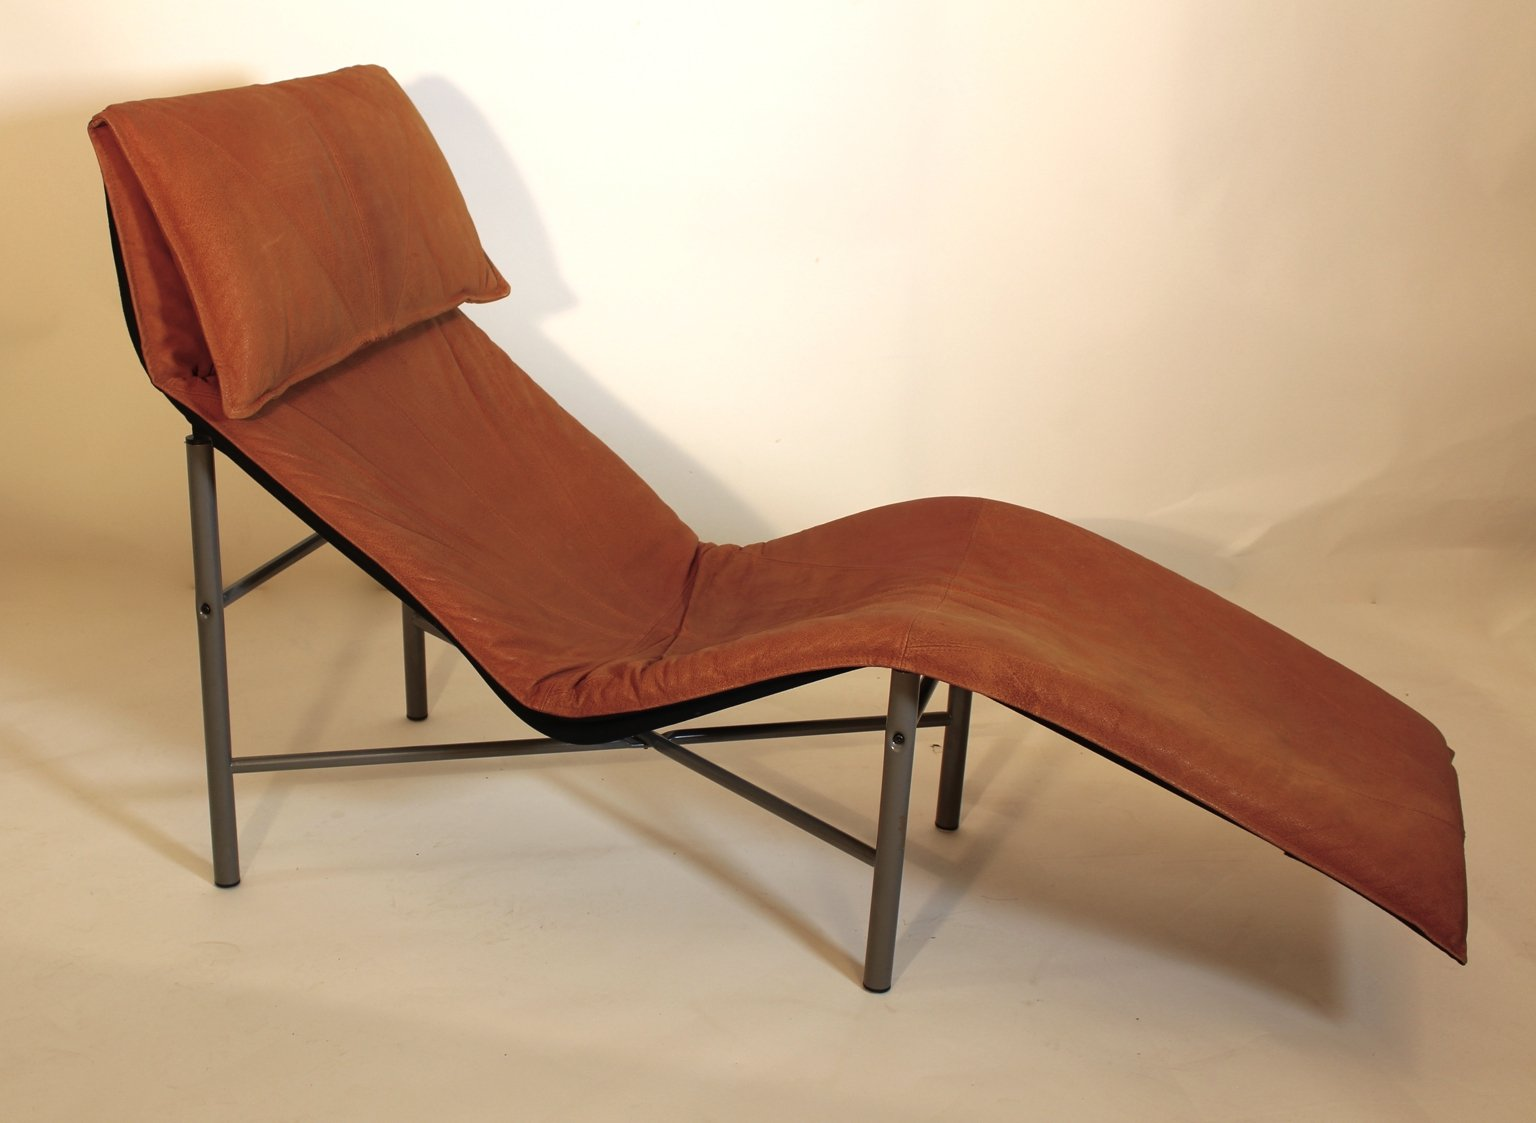 brown leather chaise longue by tord bjorklund 1970s for